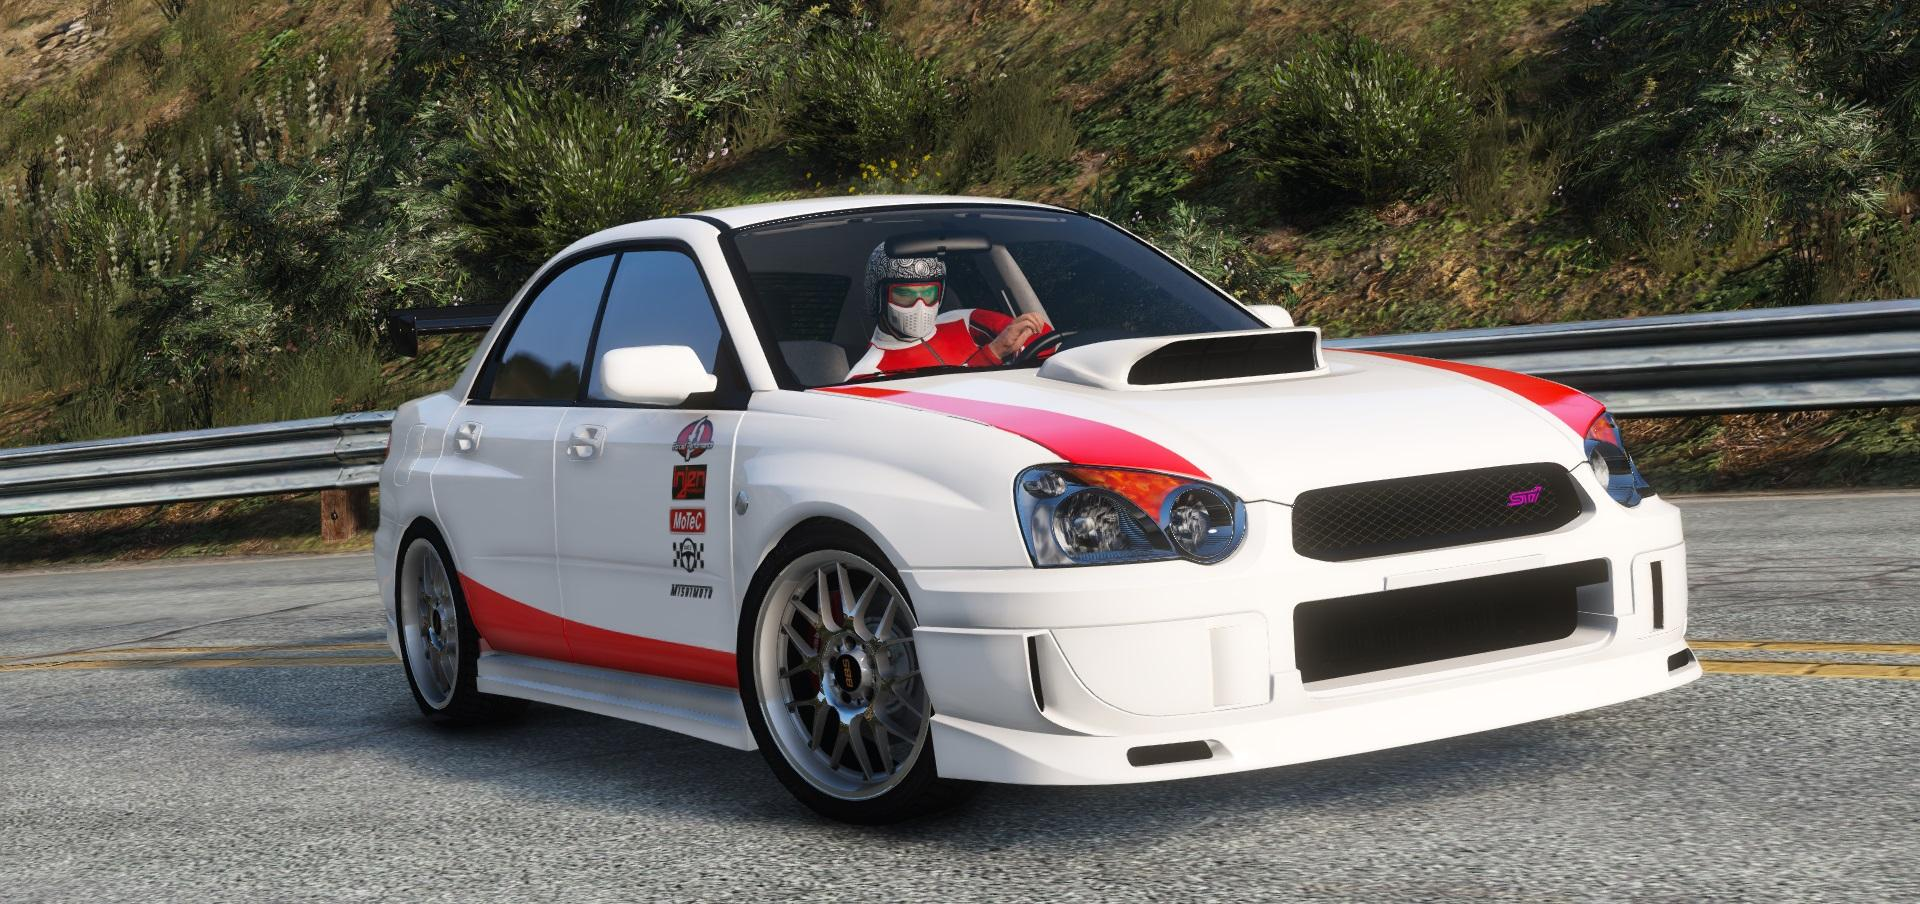 subaru impreza wrx sti 2004 39 born to race 39 livery gta5. Black Bedroom Furniture Sets. Home Design Ideas